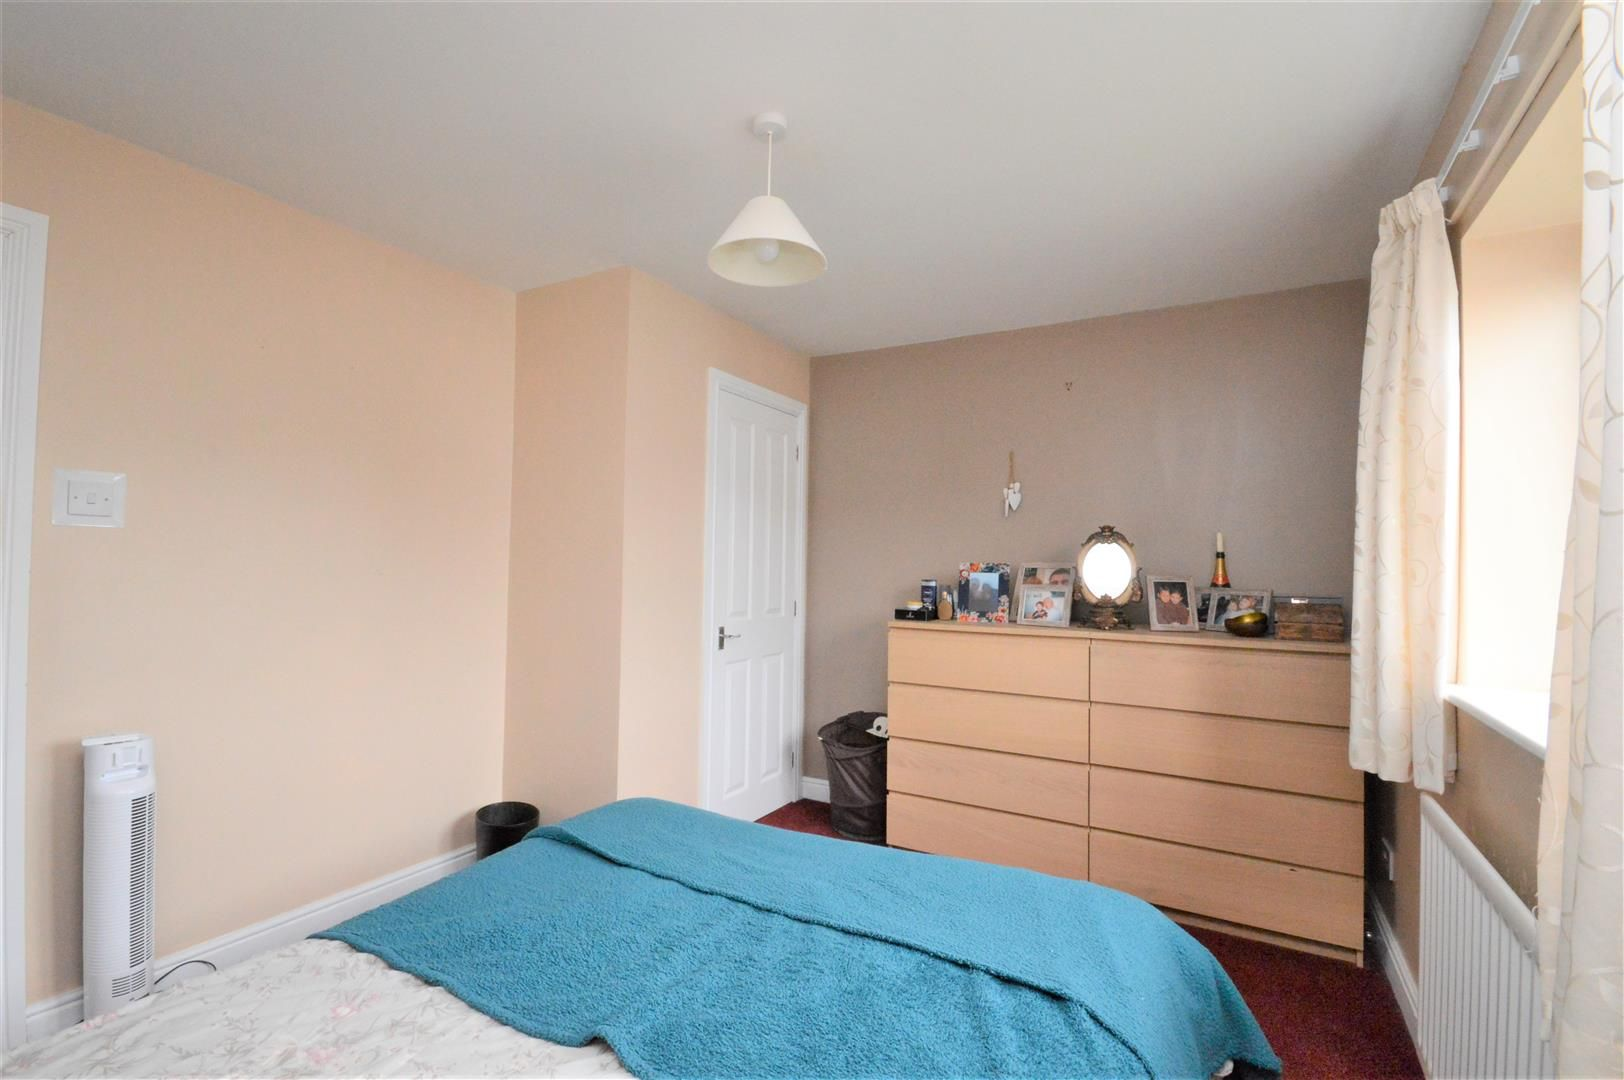 2 bed end of terrace for sale in Lower Bullingham  - Property Image 7